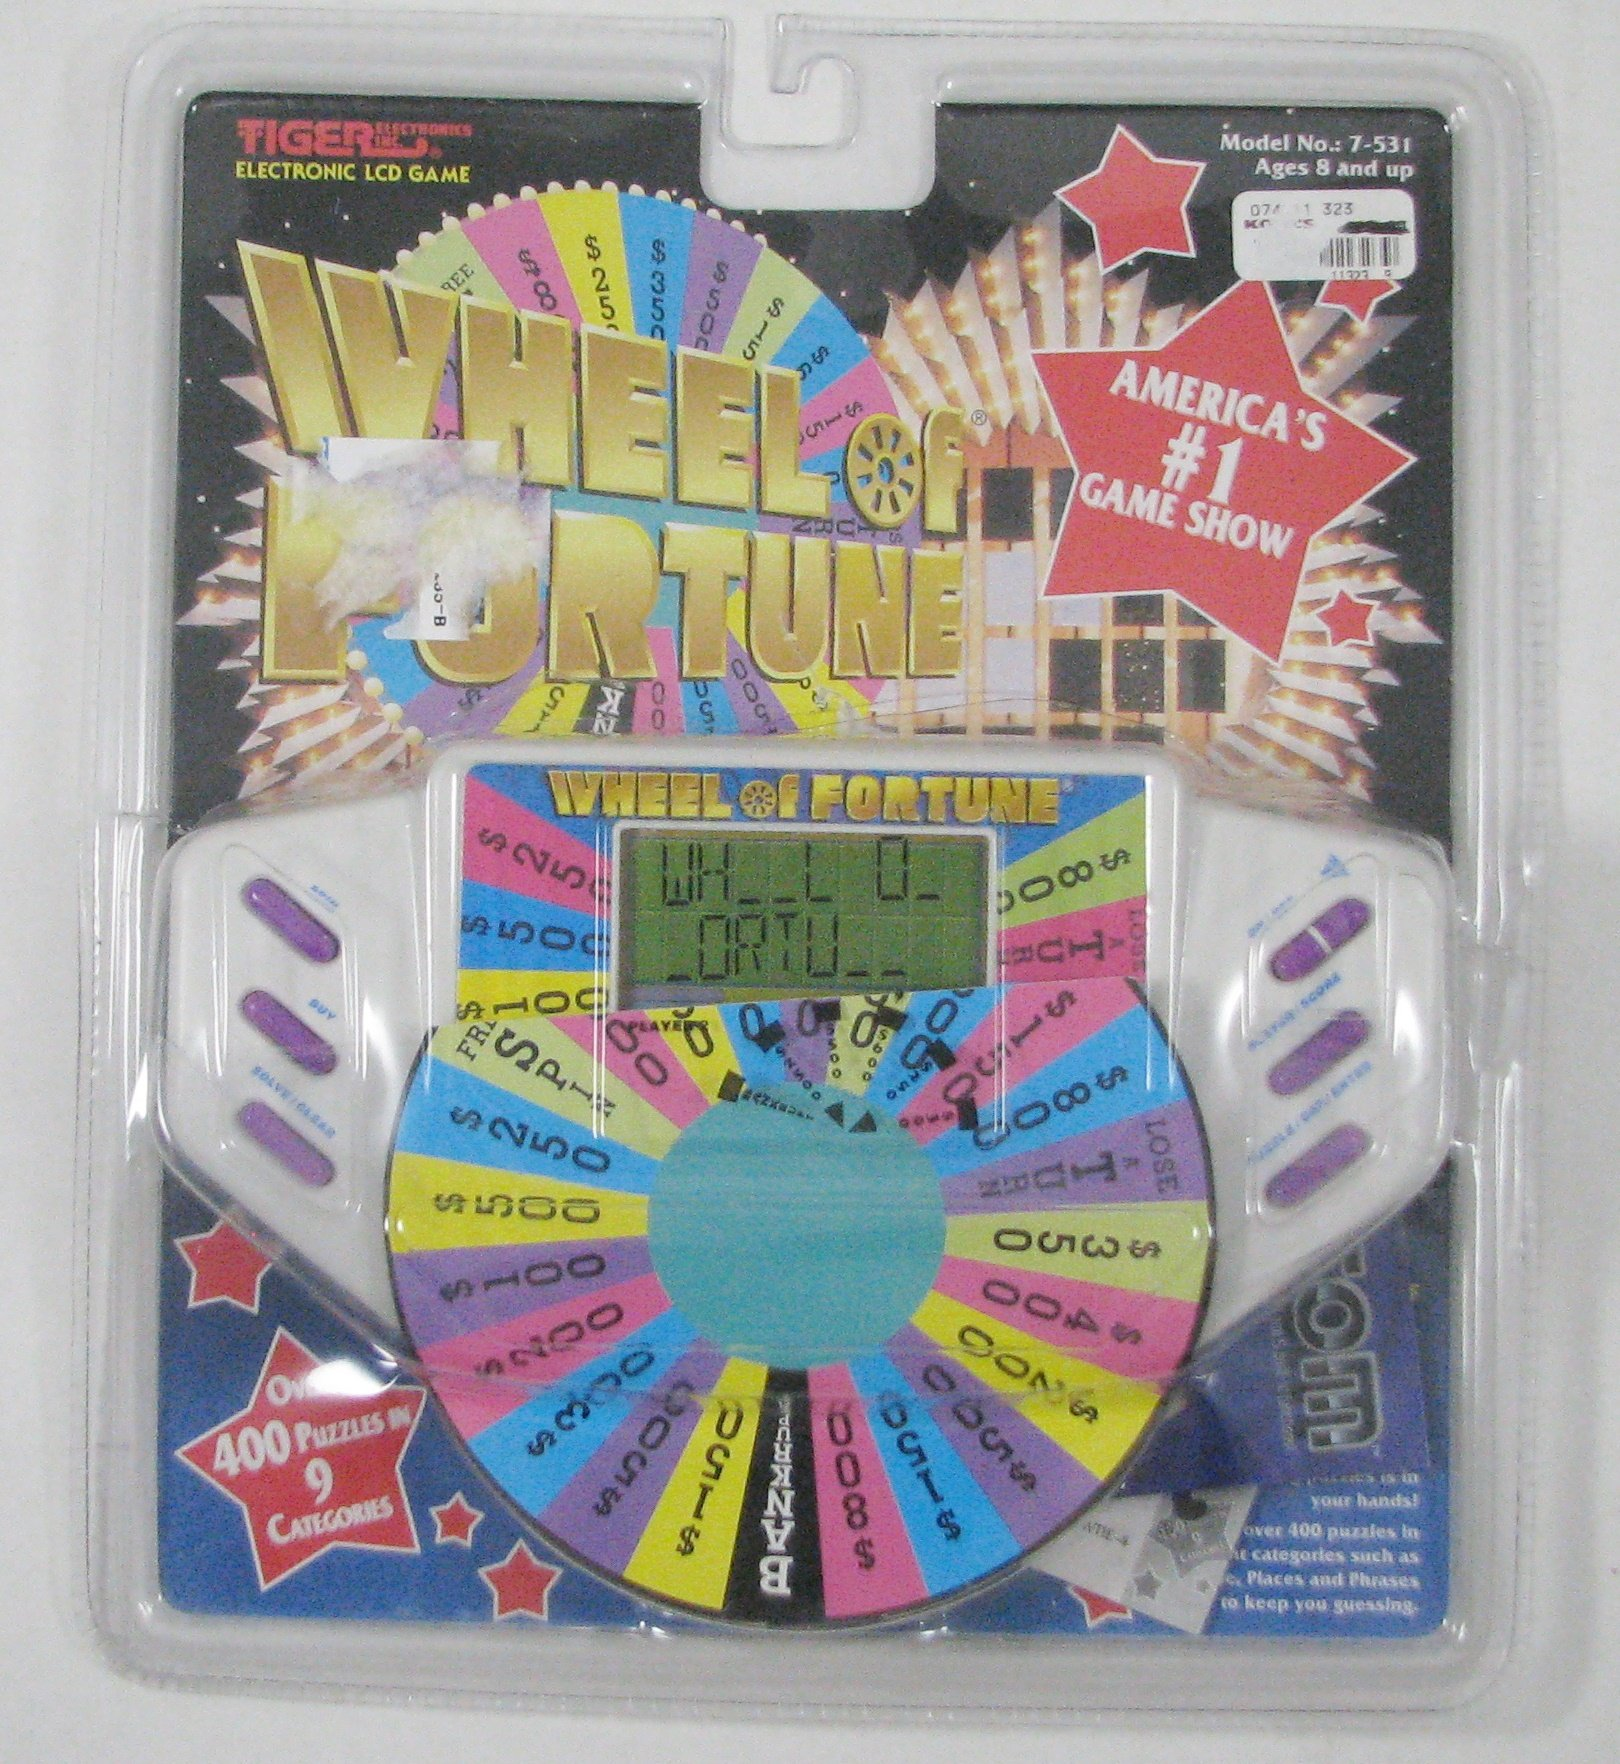 Wheel of Fortune By Tiger Electronic Handheld Game Model 7-531 by Tiger